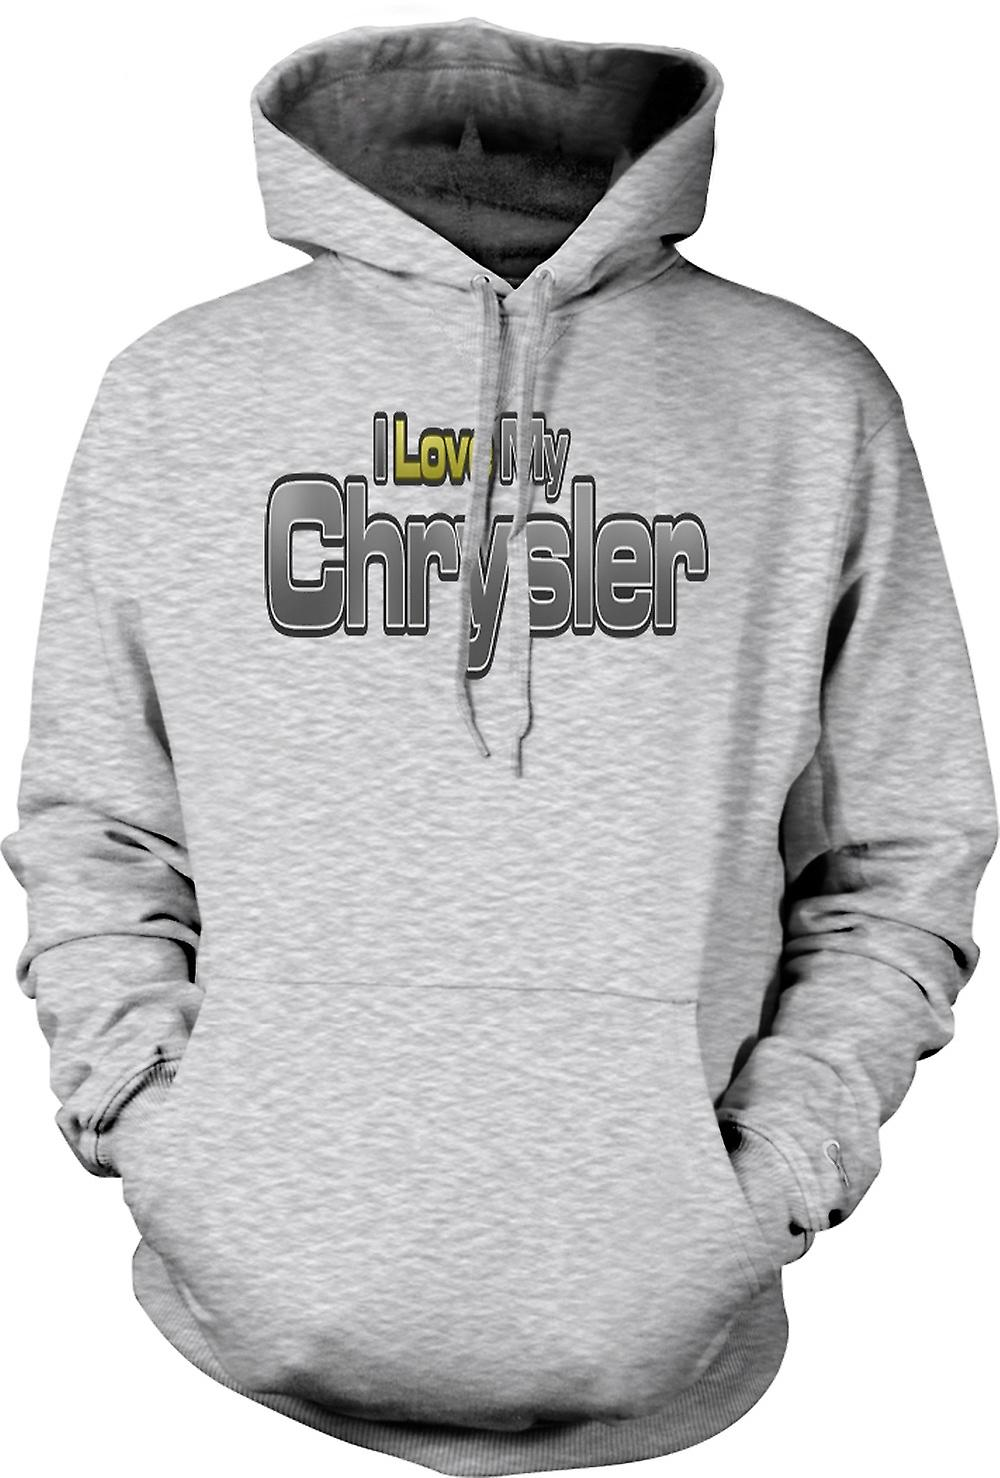 Mens Hoodie - I Love My Chrysler - Car Enthusiast